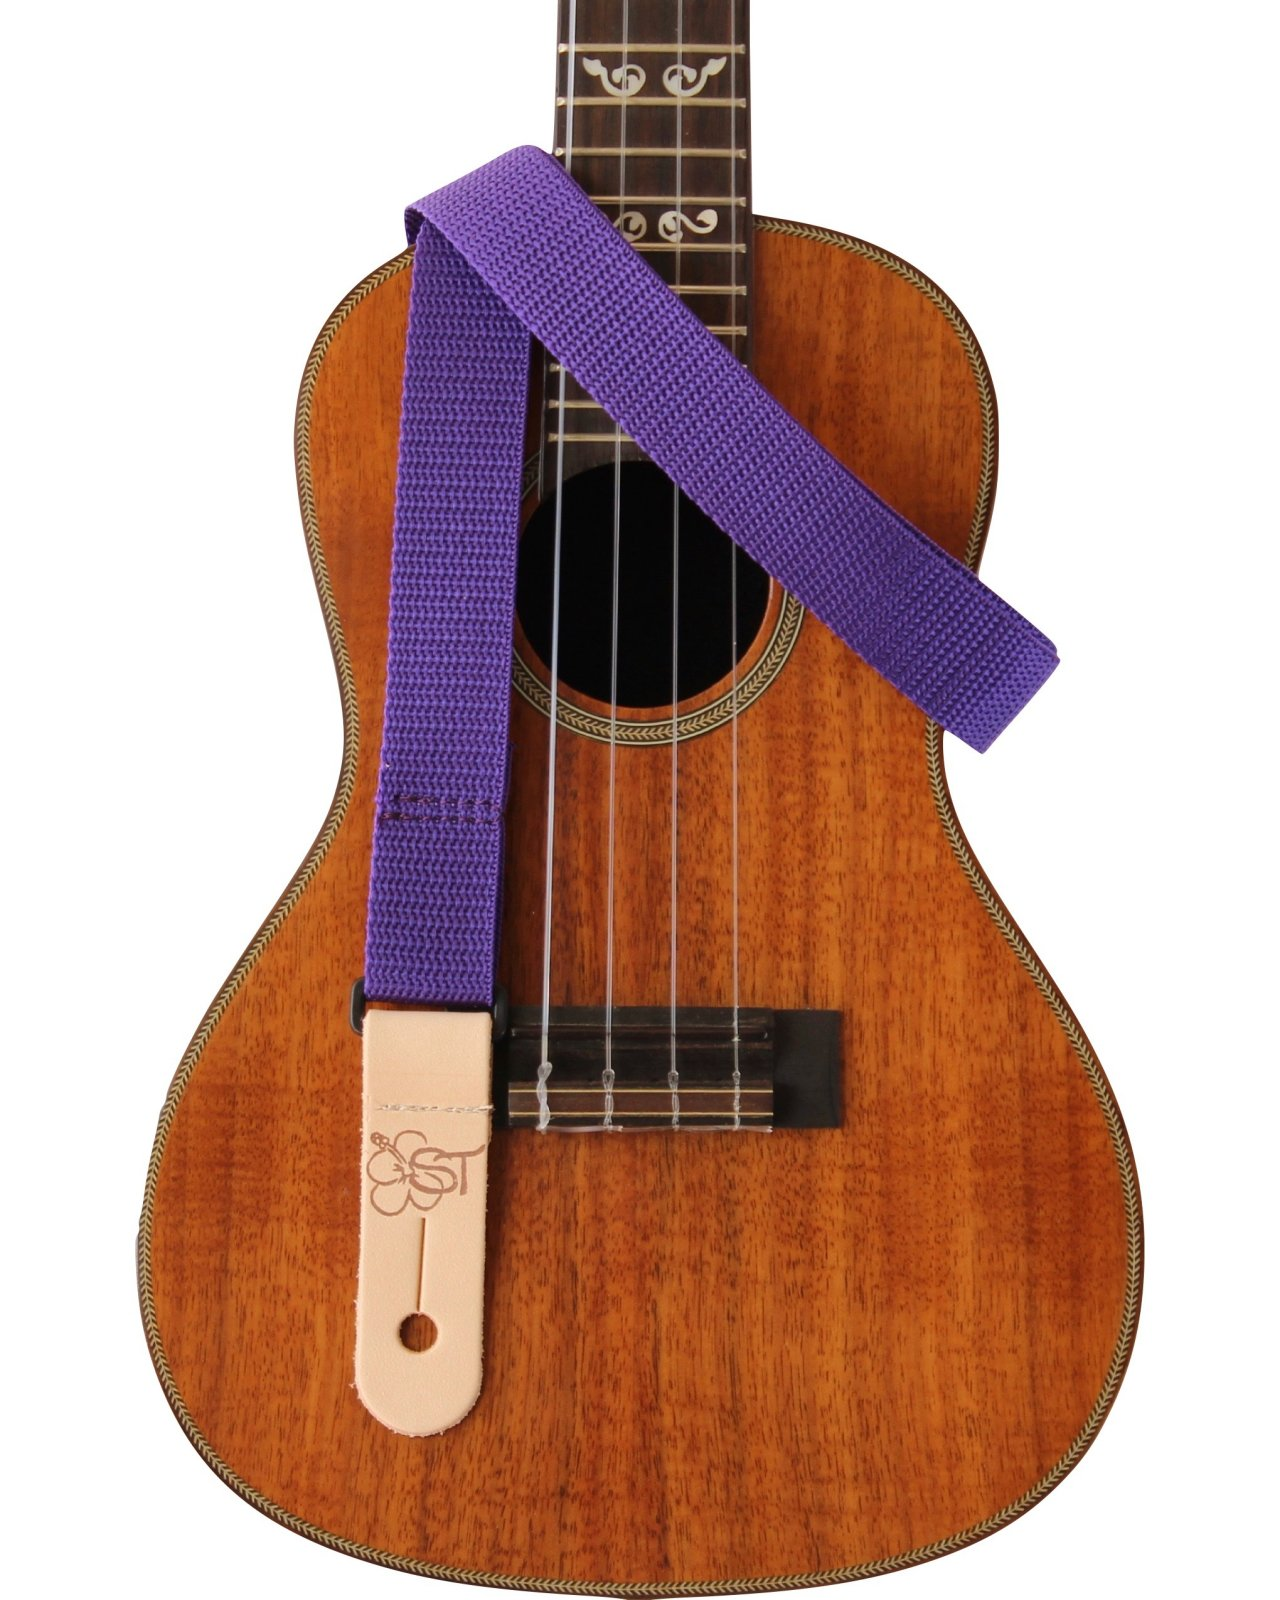 Sherrin's Threads 1 Purple Ukulele Strap